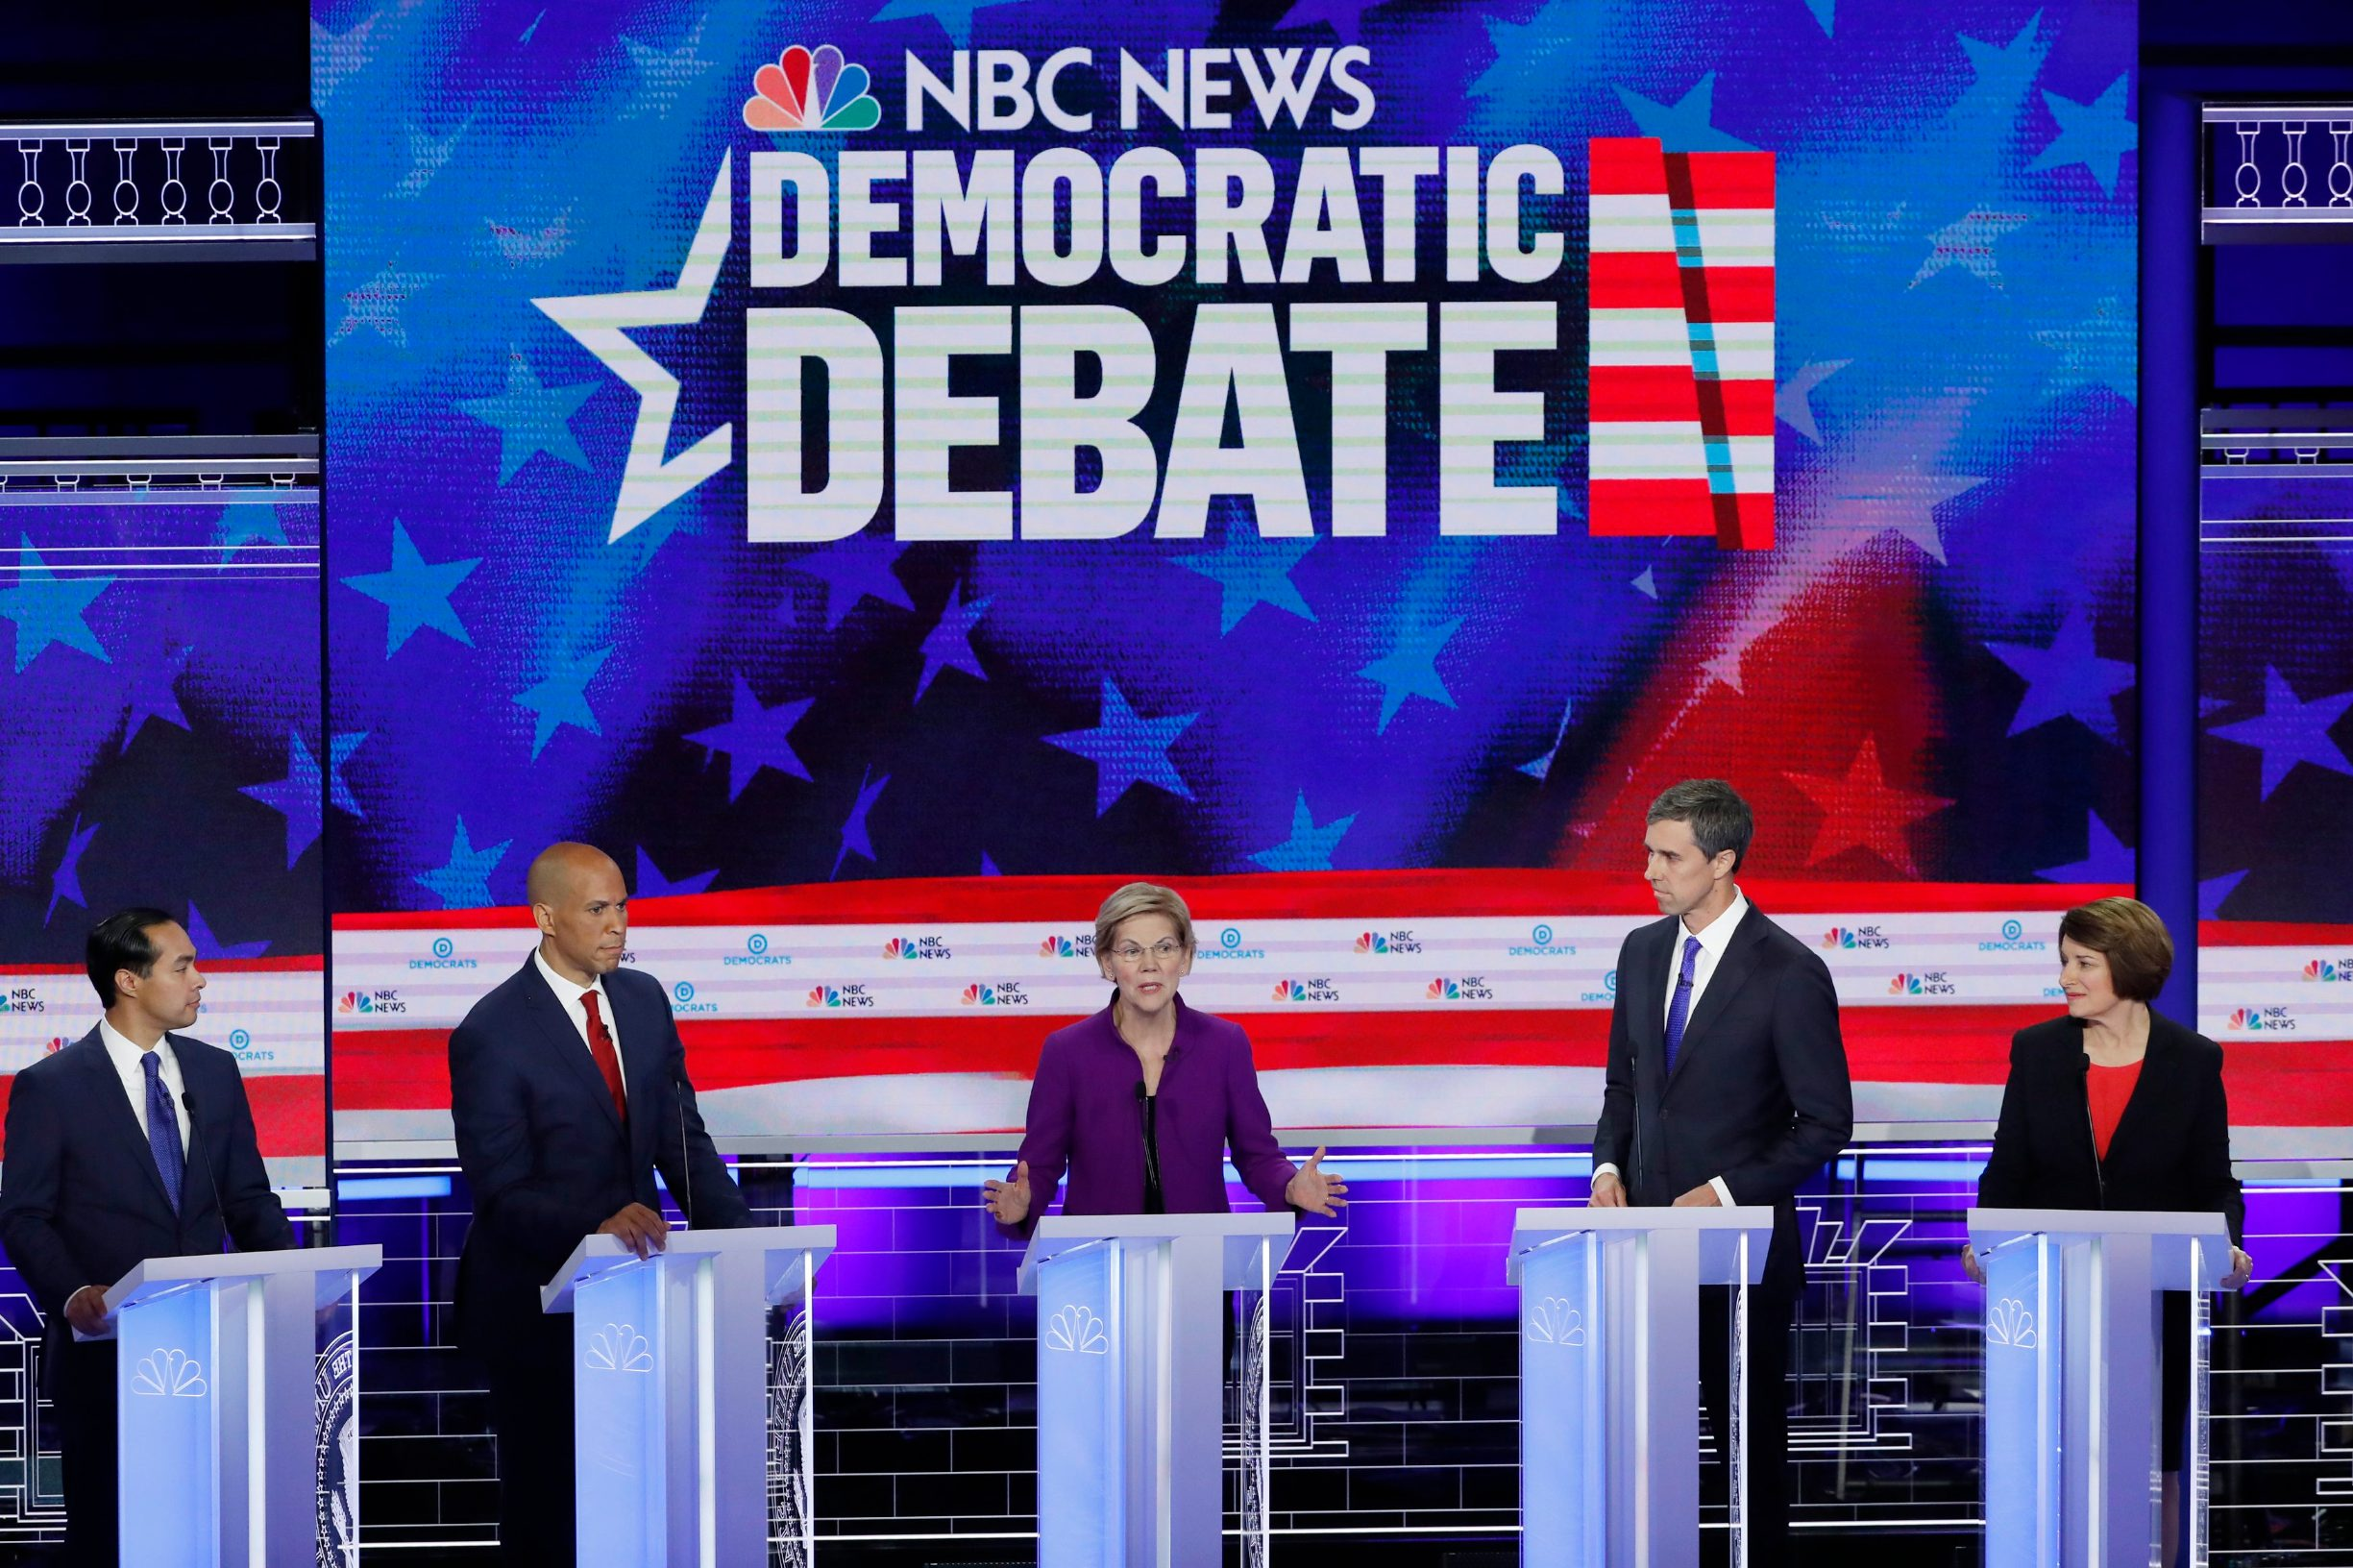 2019-06-27T032624Z_1075011770_HP1EF6R09K0HG_RTRMADP_3_USA-ELECTION-DEBATE